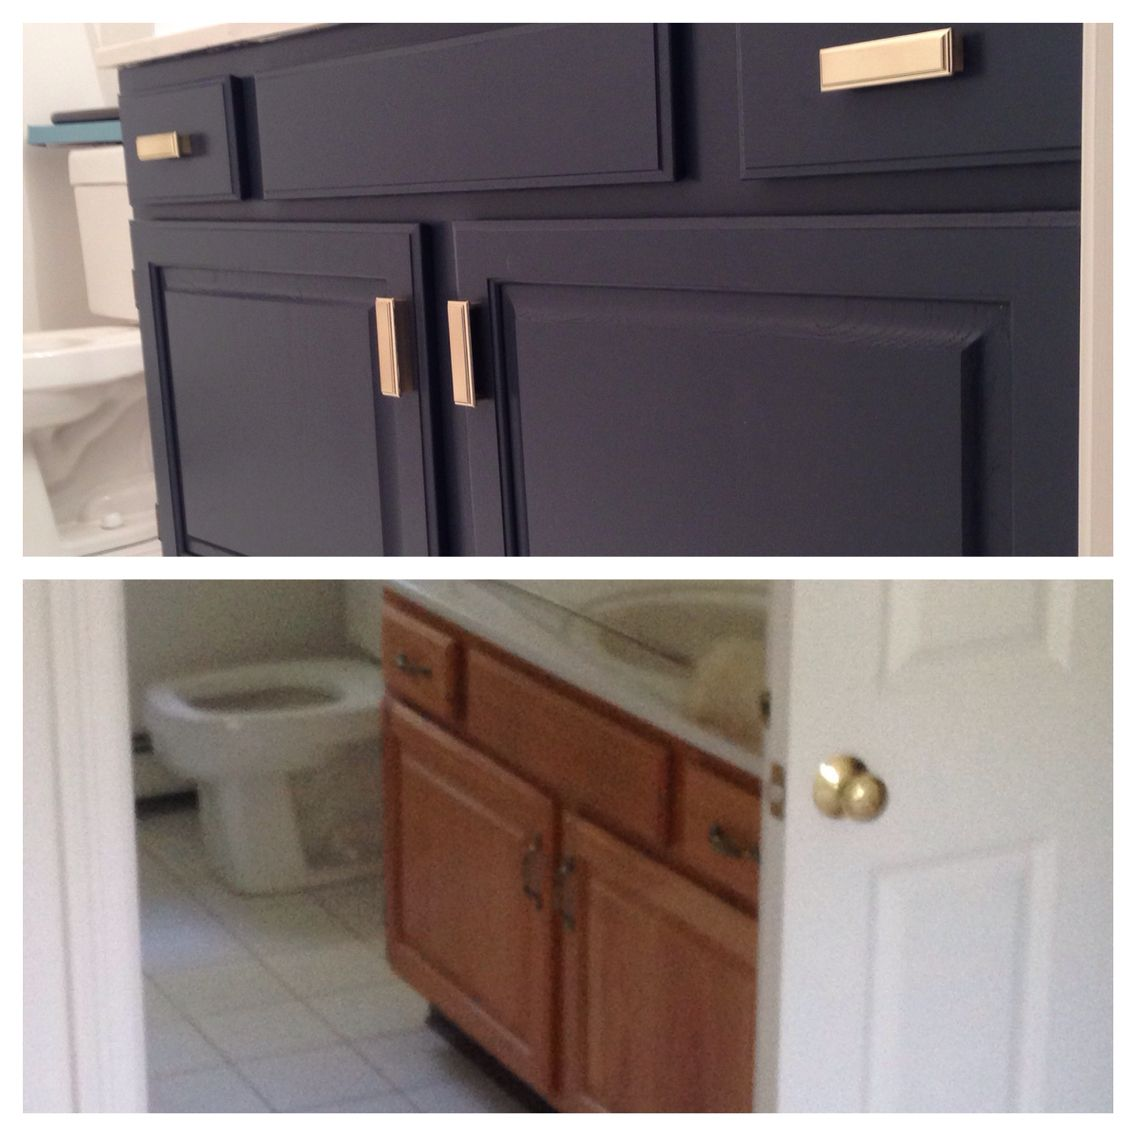 bathroom vanity pin and mottandchace rhode vanities mott island chace com navy